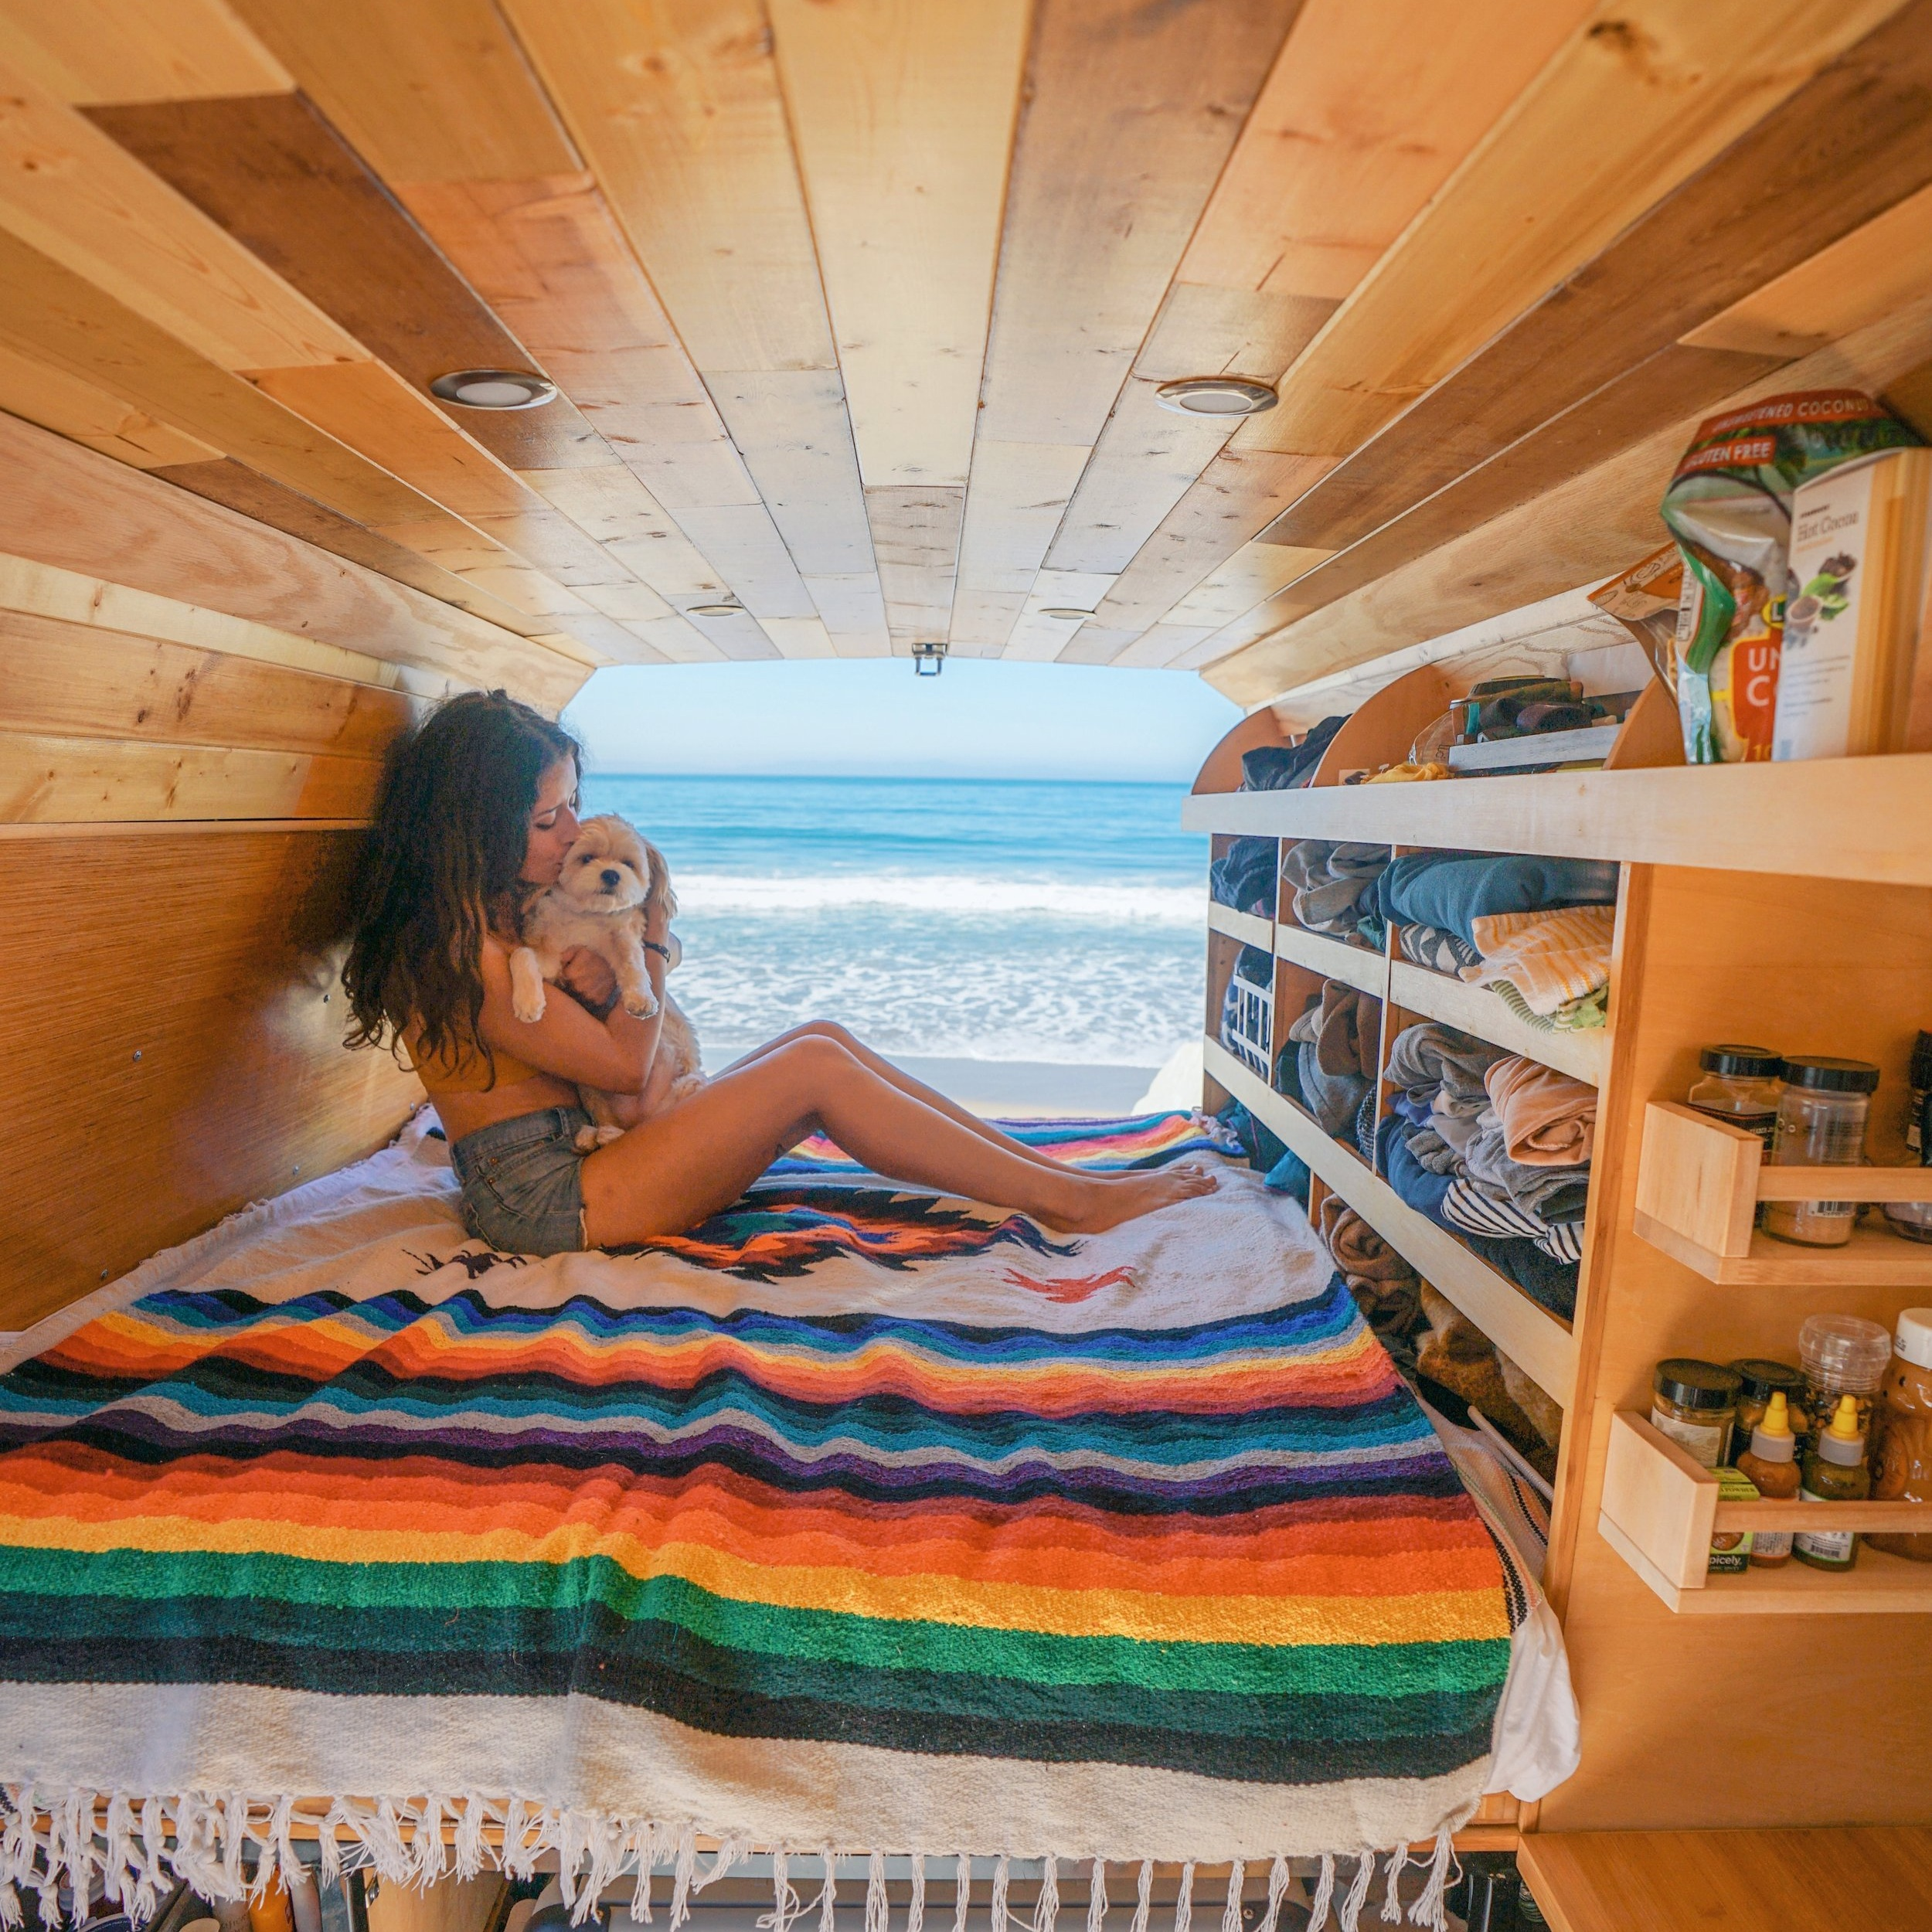 Redbook Magazine - Travel Influencers Share Their Favorite Things About #VanLife